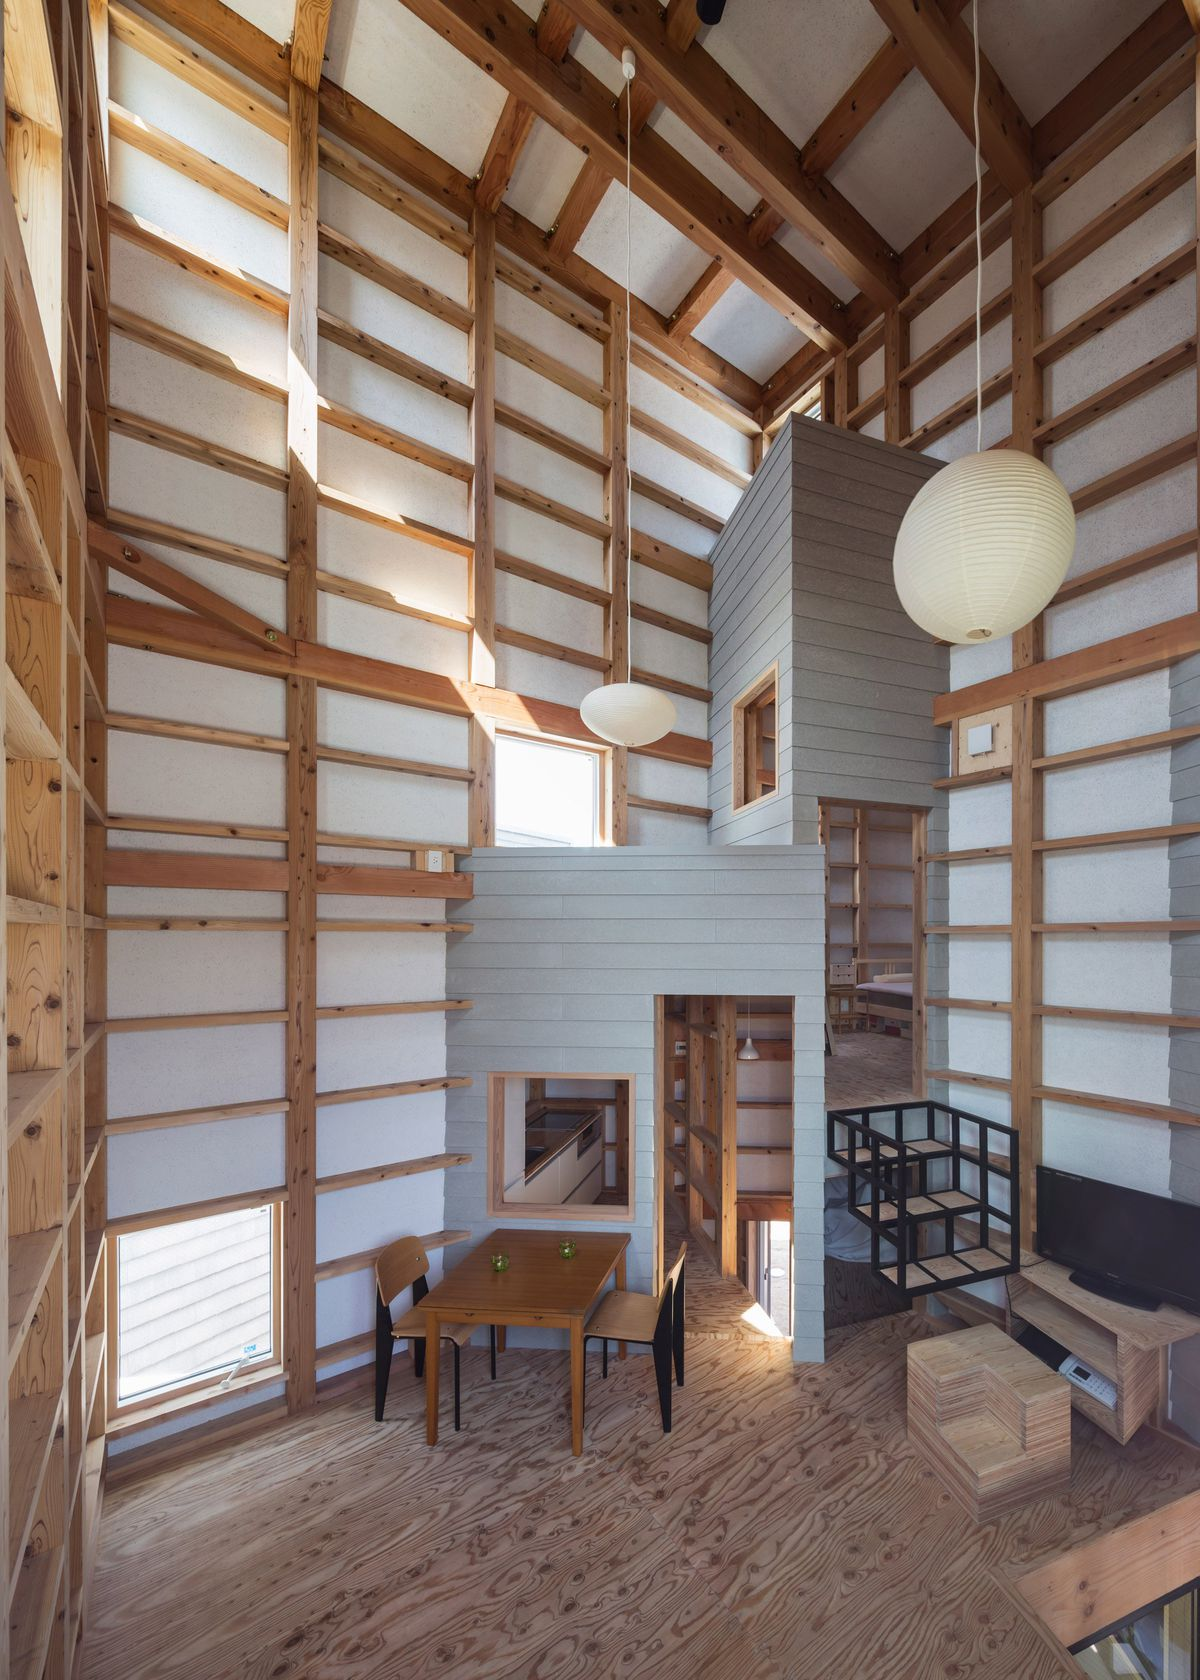 Eccentric Japanese Home Built From Nine Intersecting Cubes